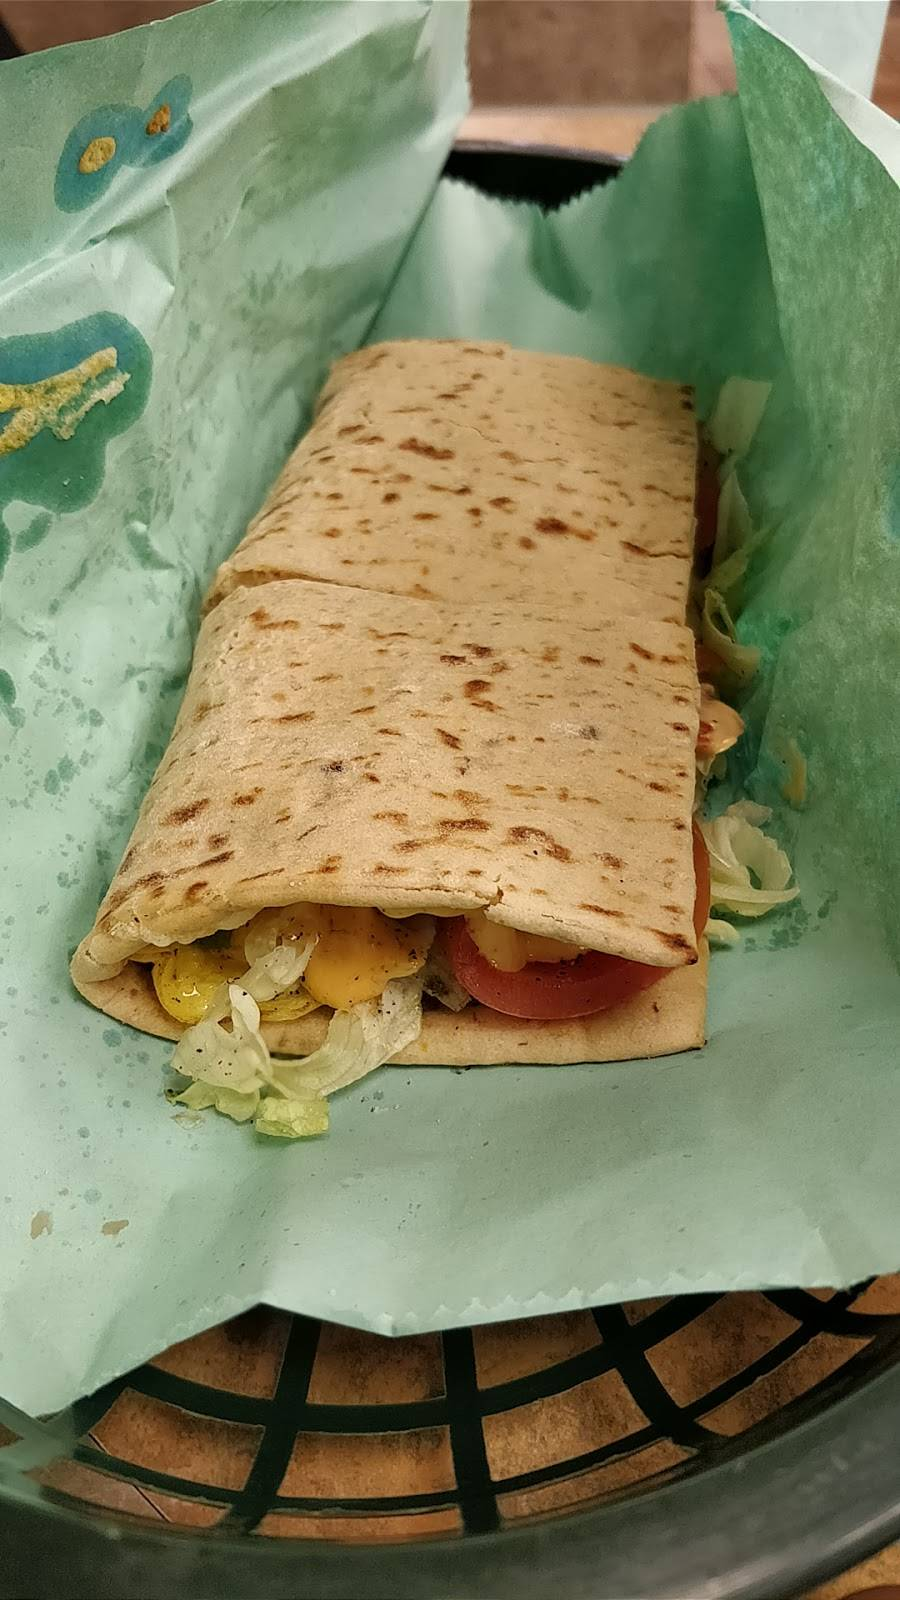 Subway | restaurant | 413 Central Ave, Jersey City, NJ 07307, USA | 2012175666 OR +1 201-217-5666